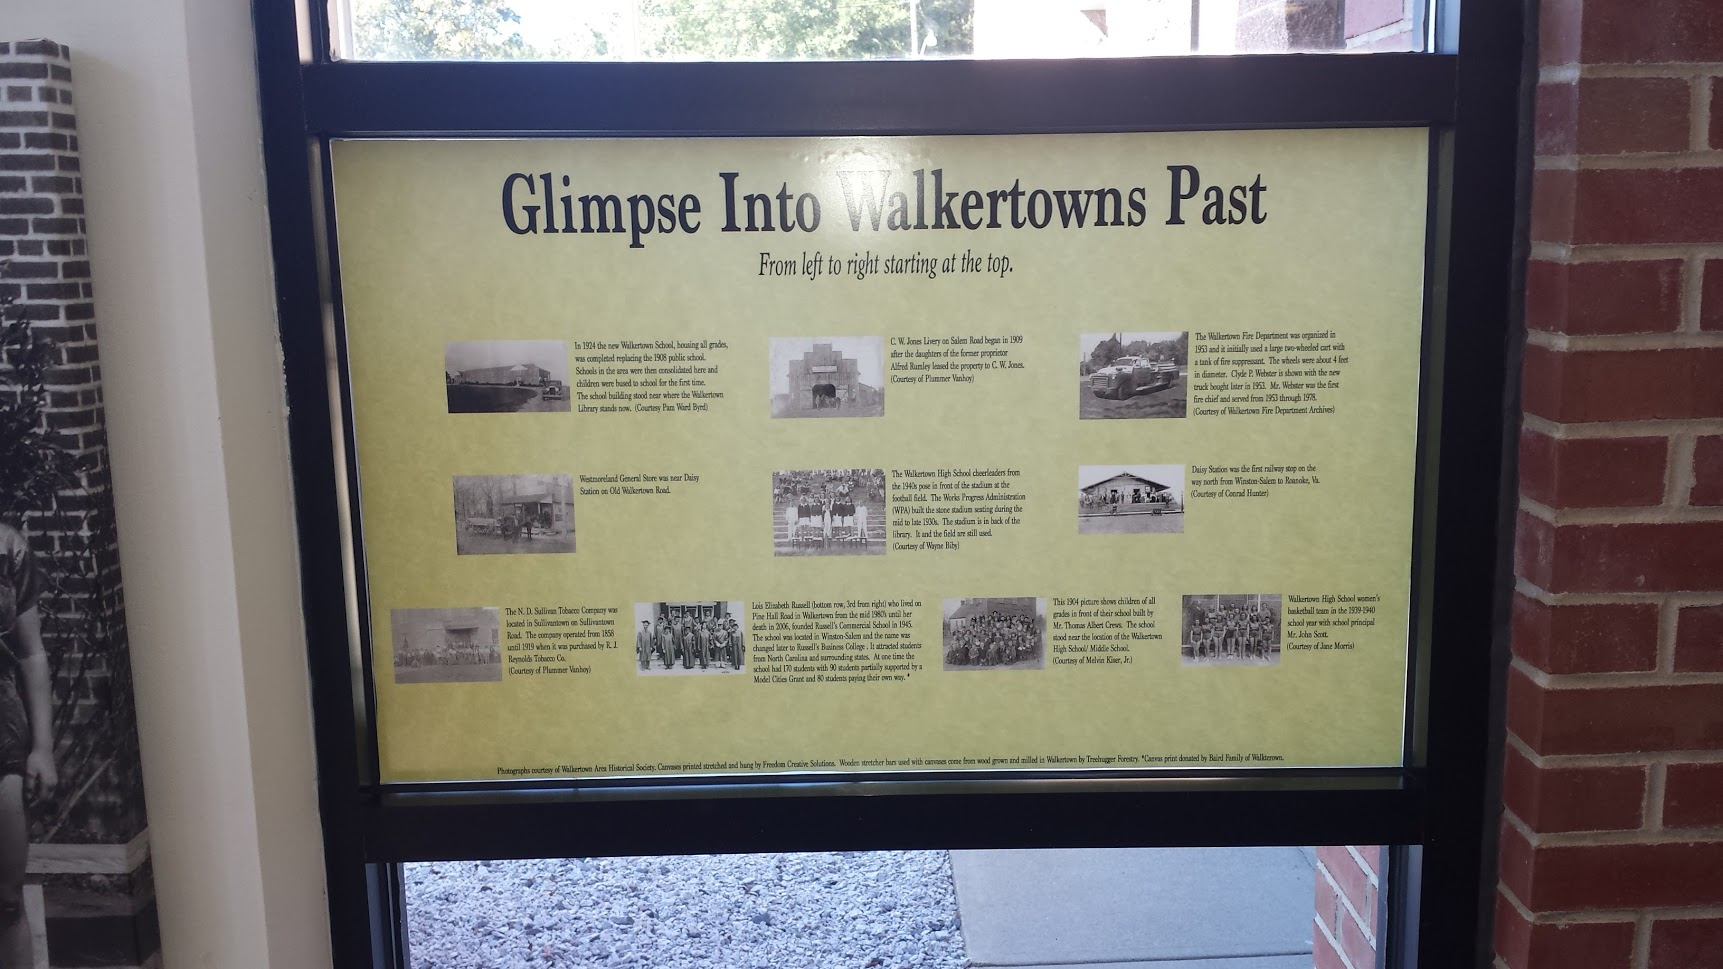 glimpse into walkertowns past board display